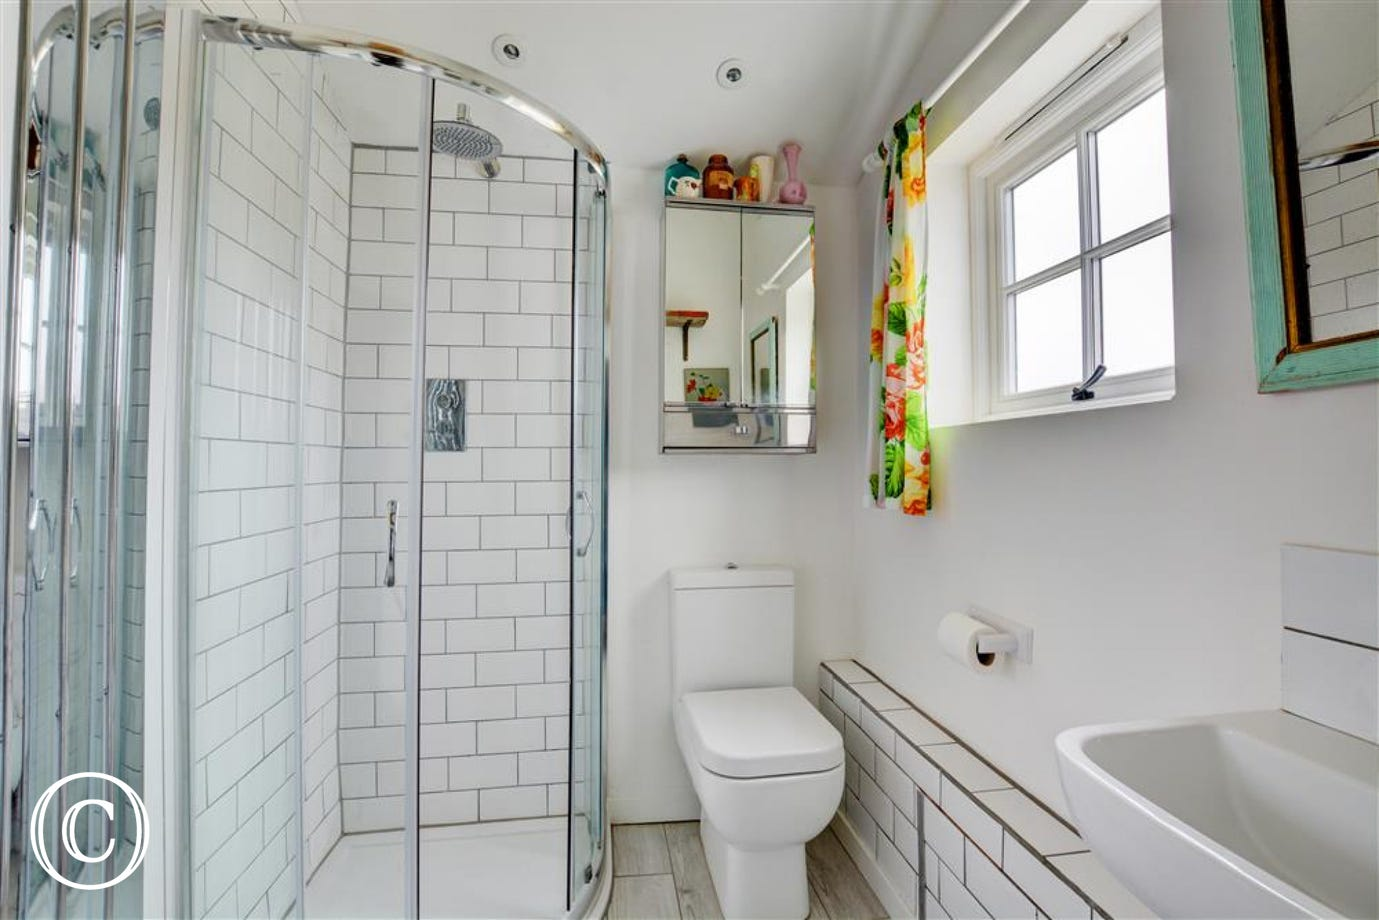 Shower room with shower cubicle and WC